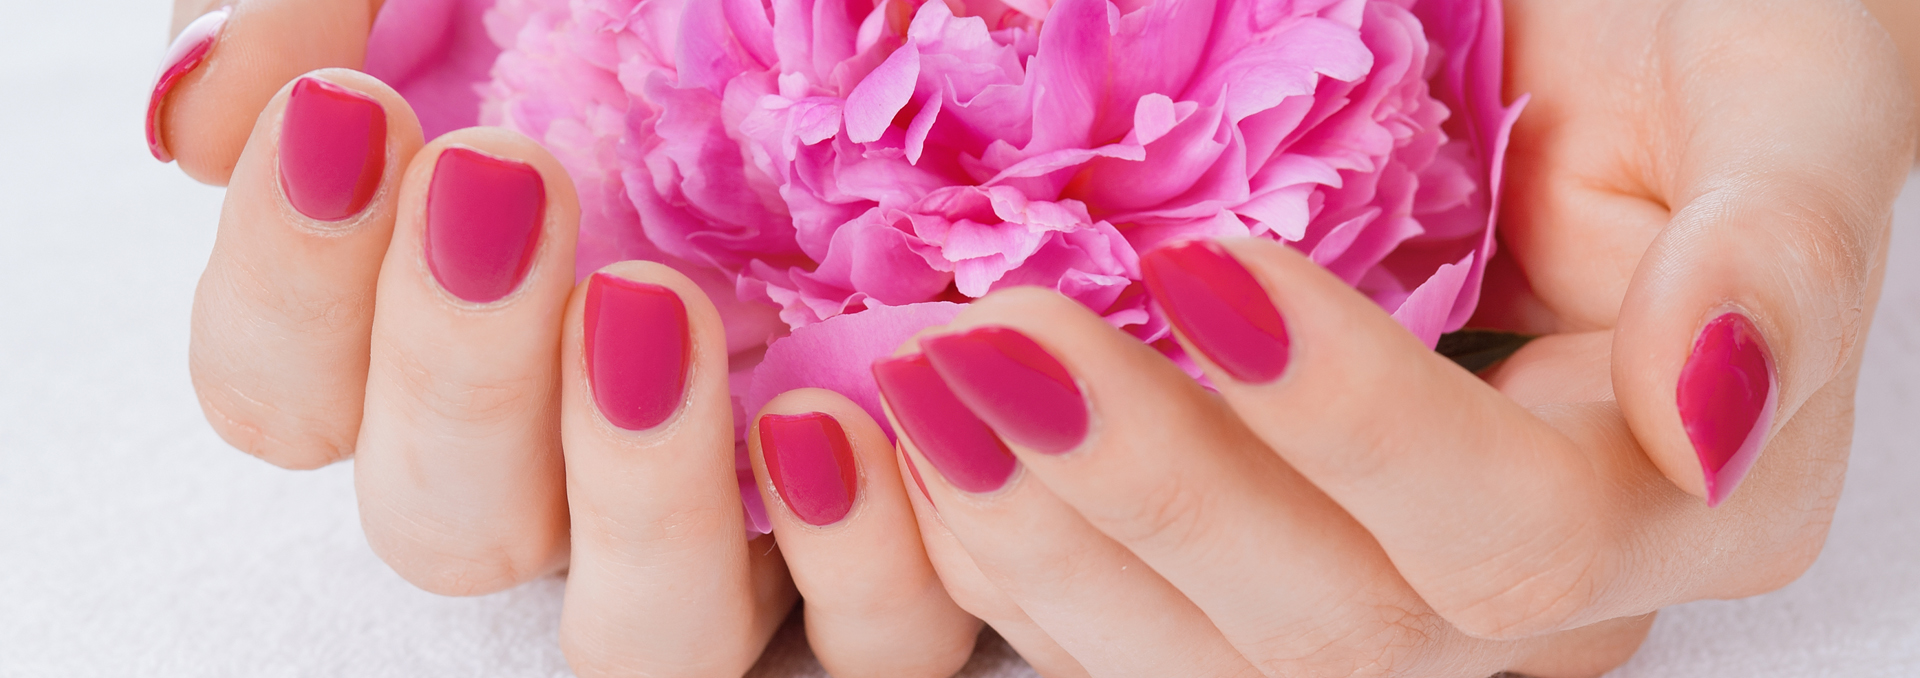 90's Nails & Spa - Nail salon in Waterville, Maine 04901